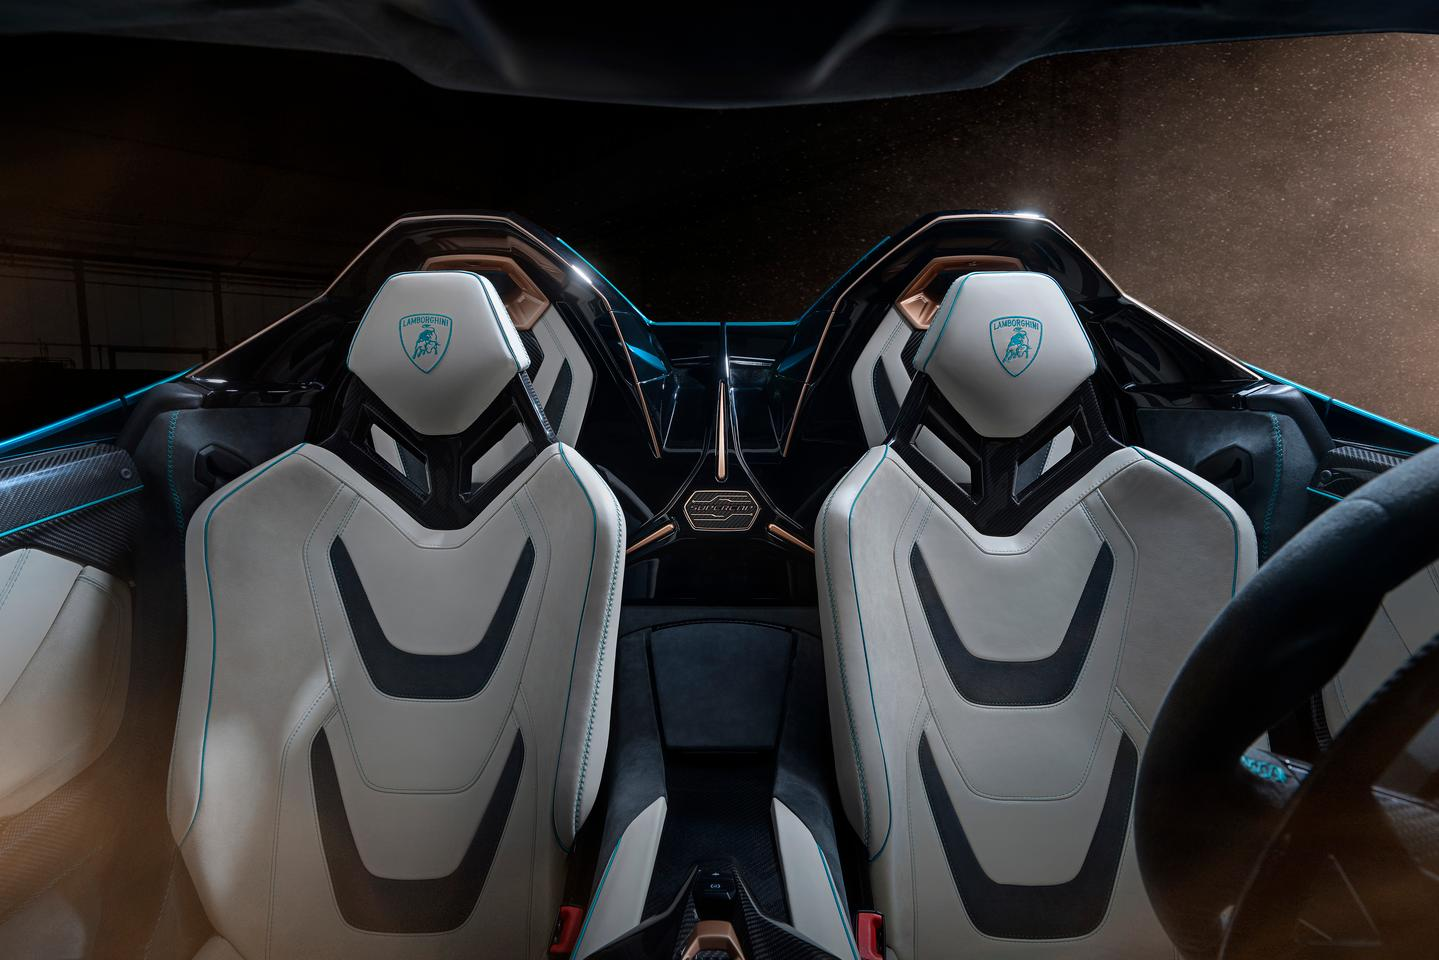 Them's some sexy lookin' seats